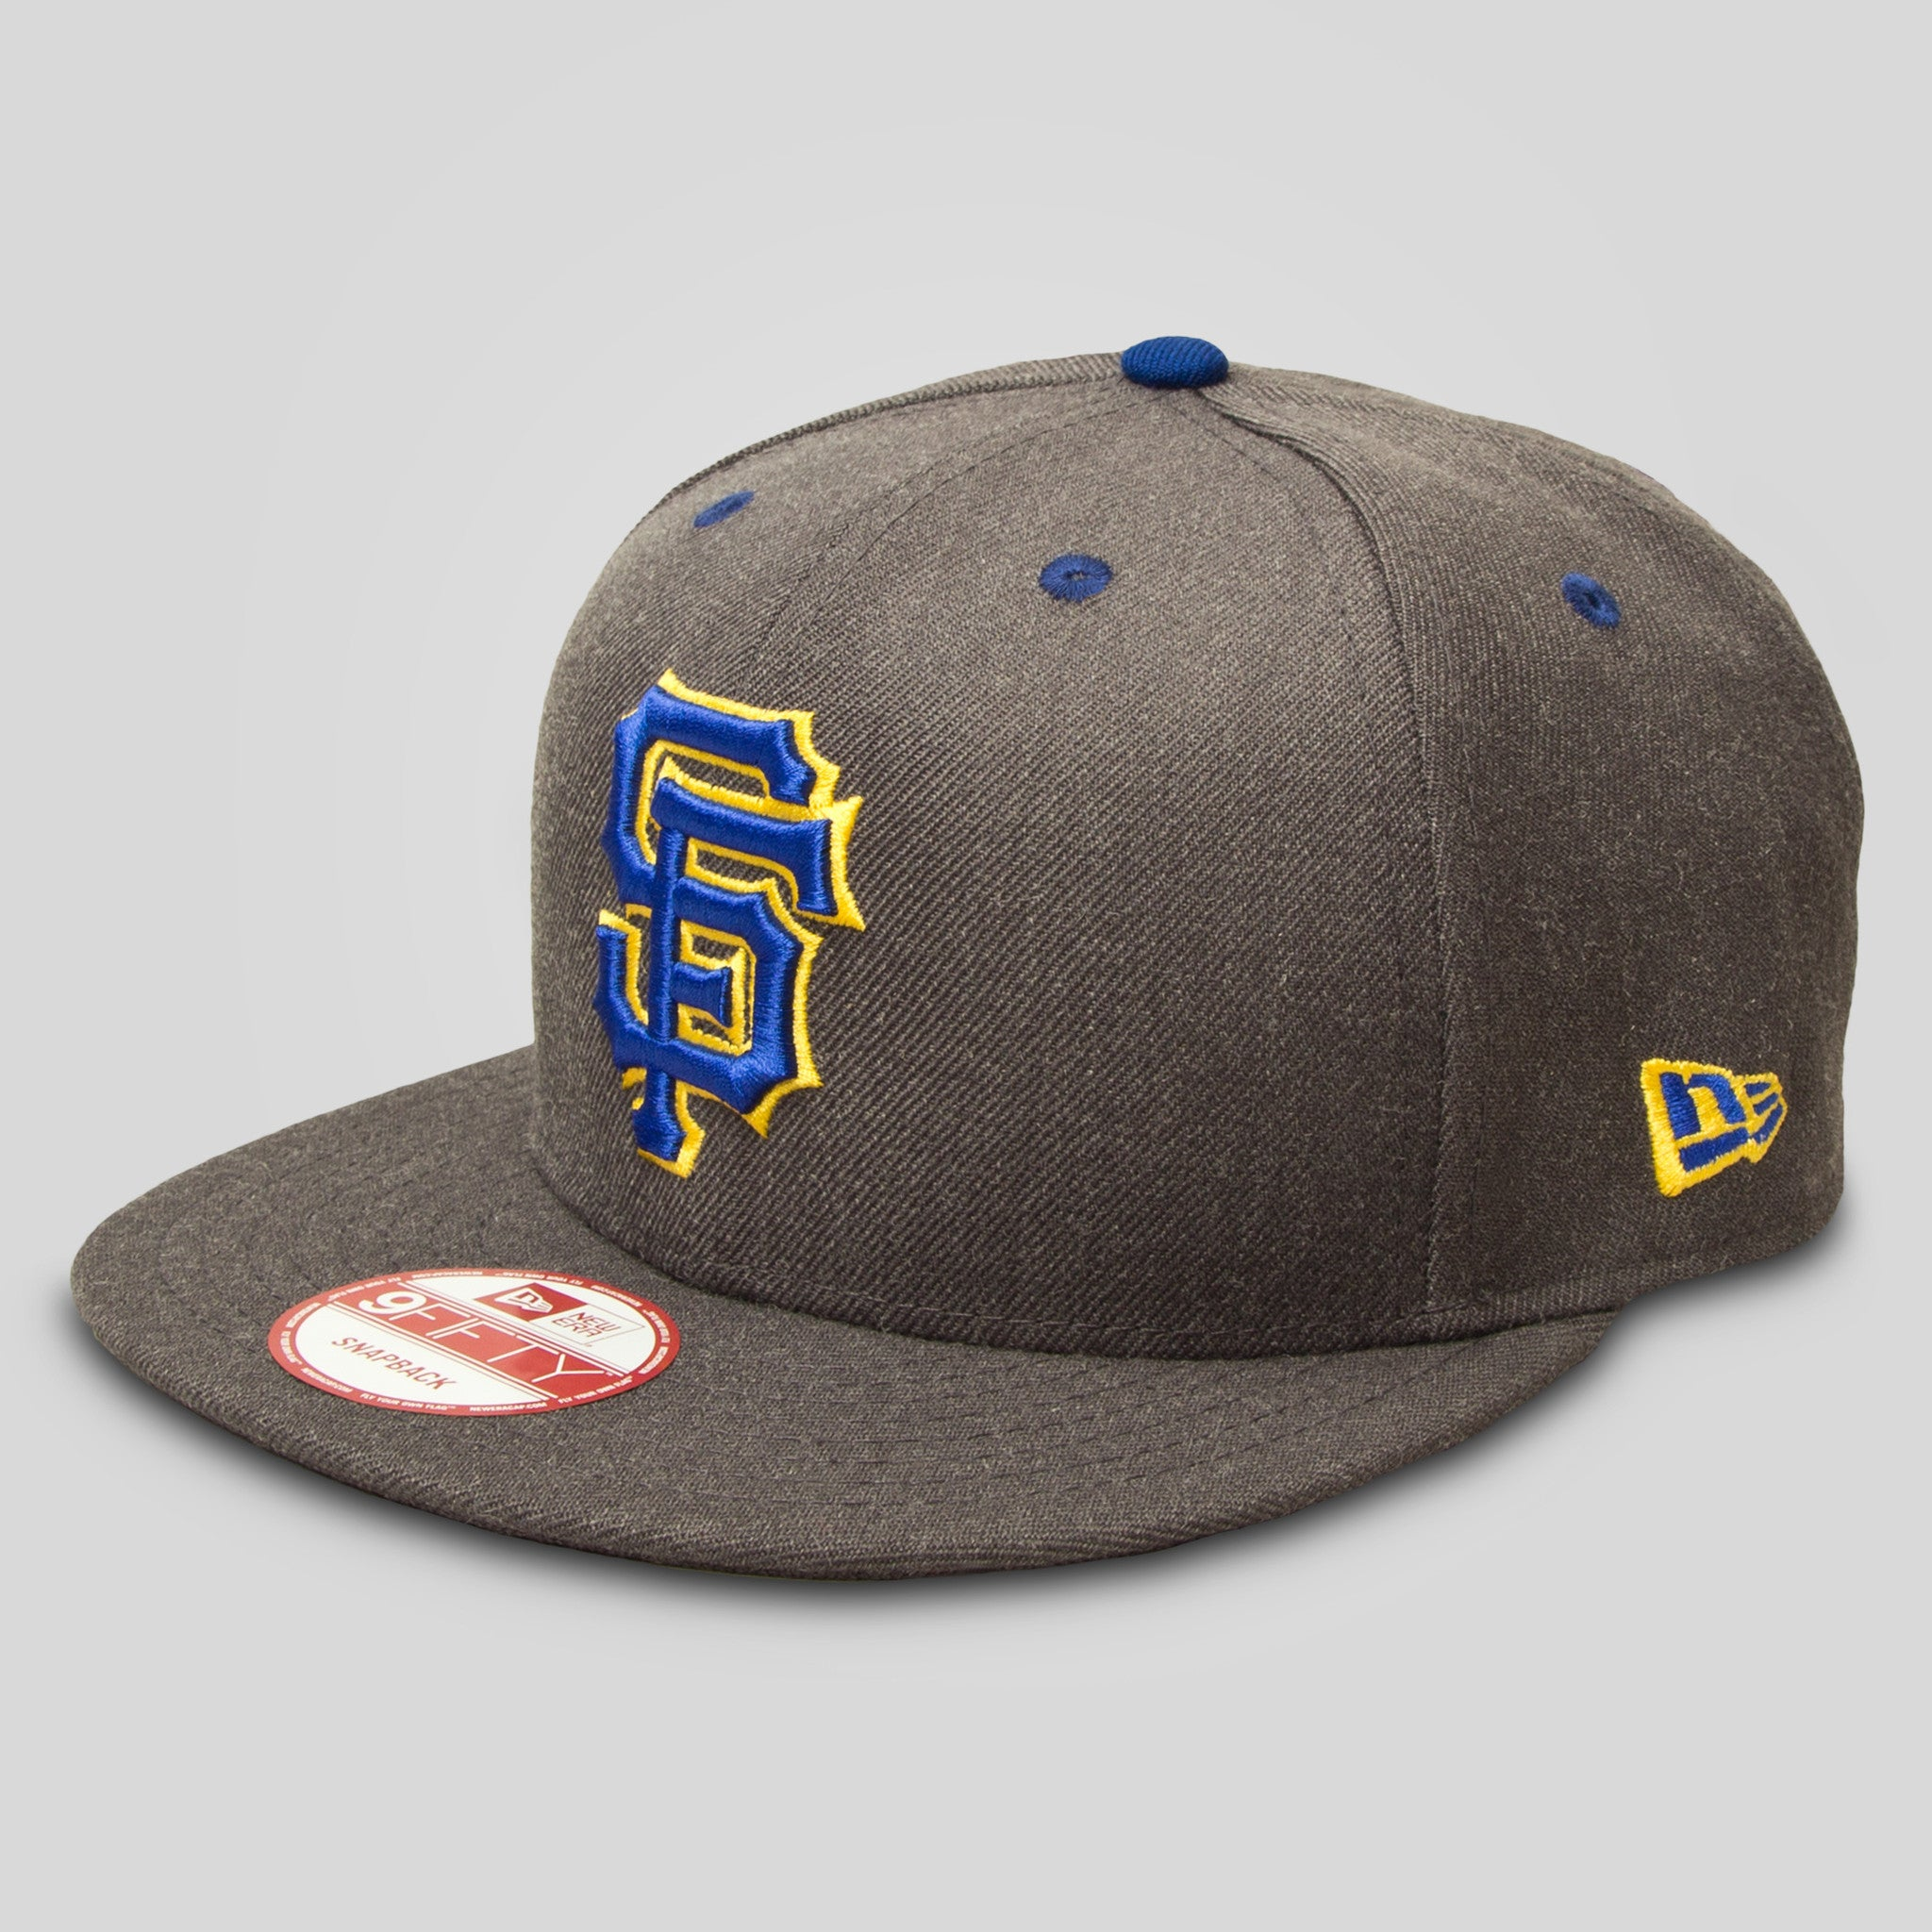 Upper Playground - Lux - SF Giants New Era Snapback in Graphite 22c675baab5